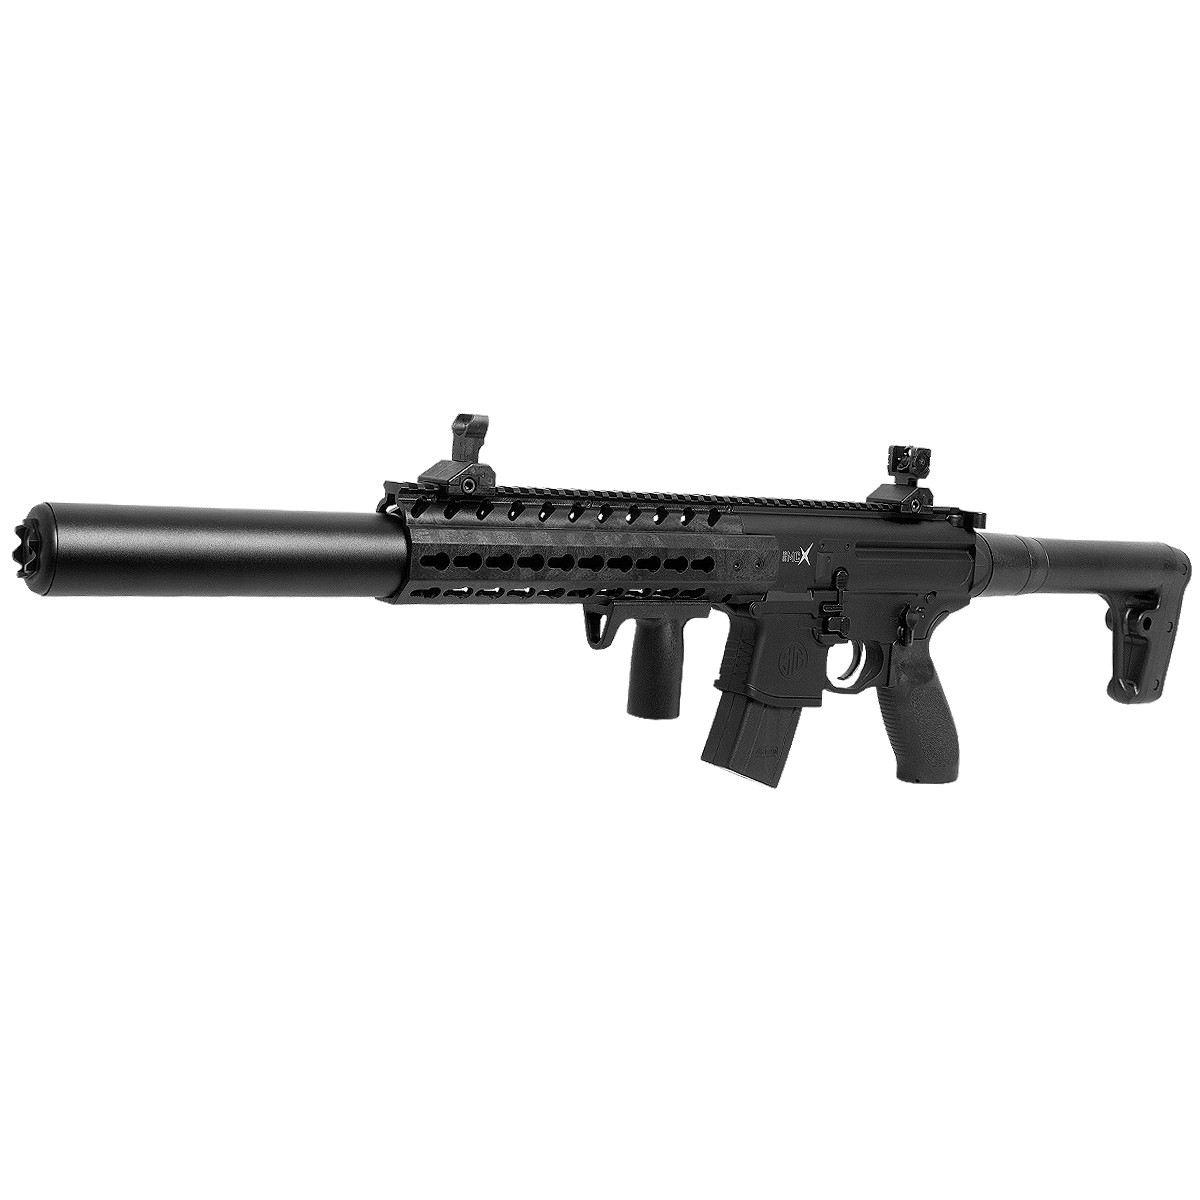 RIFLE DE PRESSÃO SIG SAUER MCX CO2 4,5MM 30 TIROS